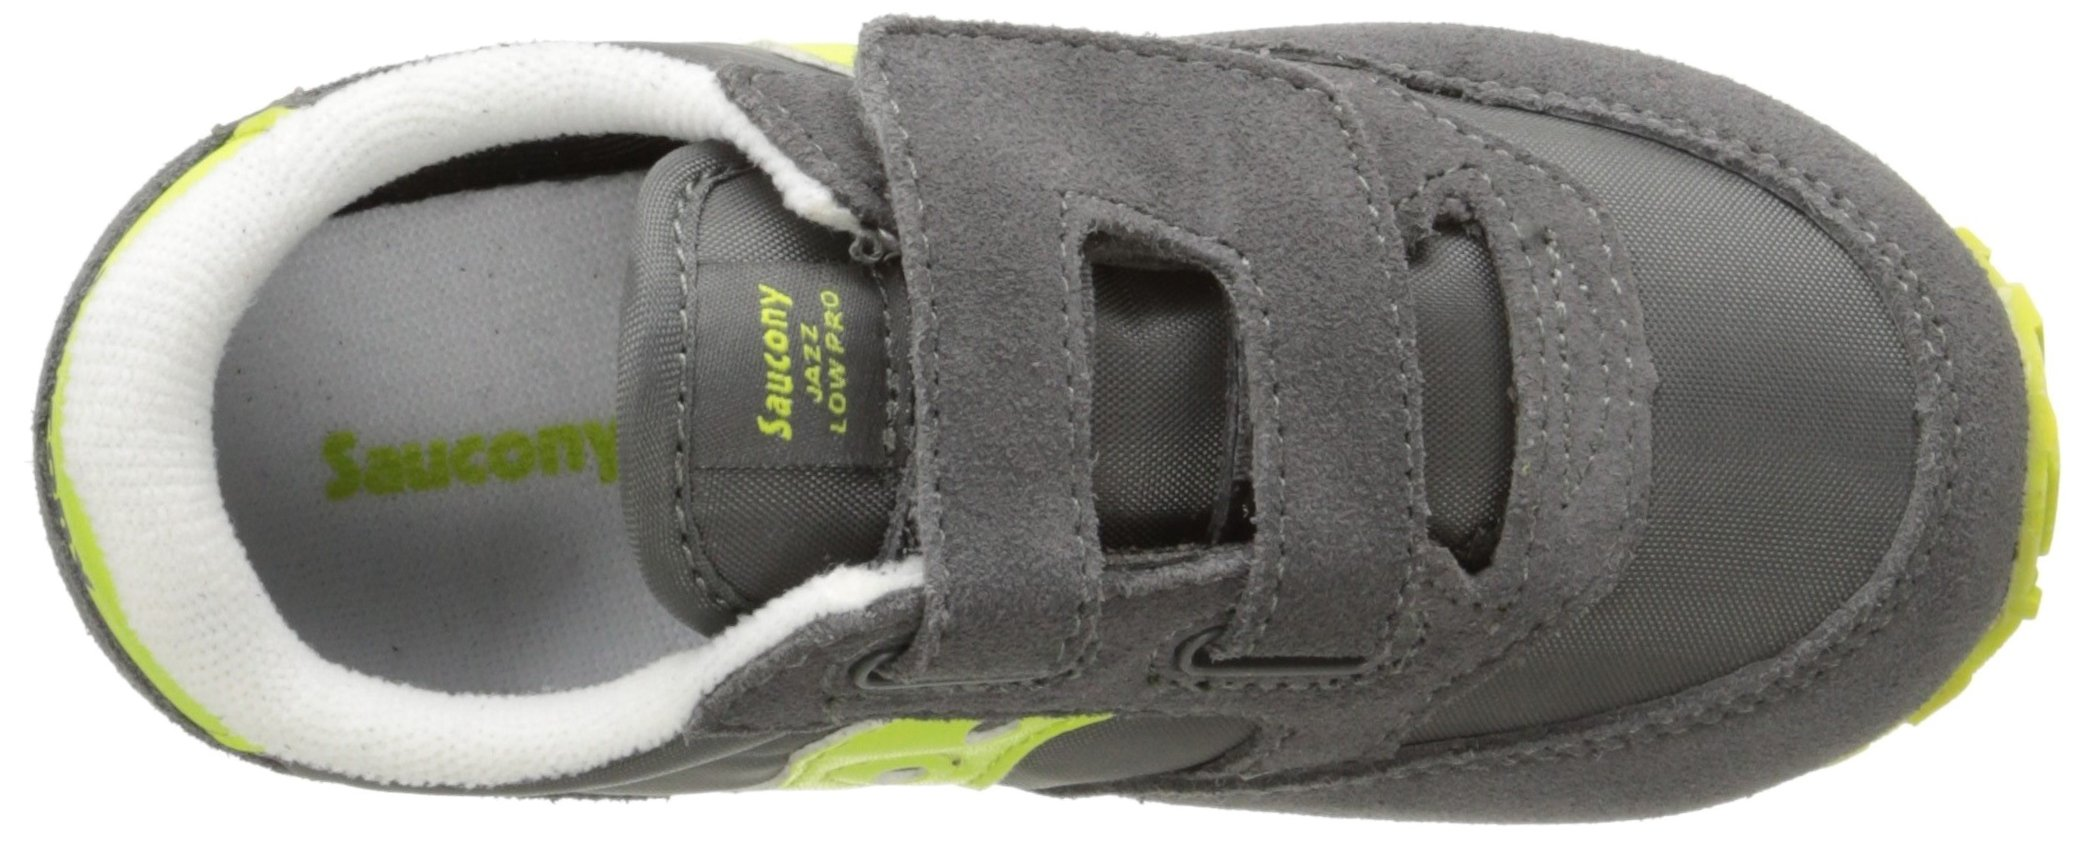 Saucony Jazz Hook & Loop Sneaker (Toddler/Little Kid), Grey/Citron, 9 M US Toddler by Saucony (Image #8)